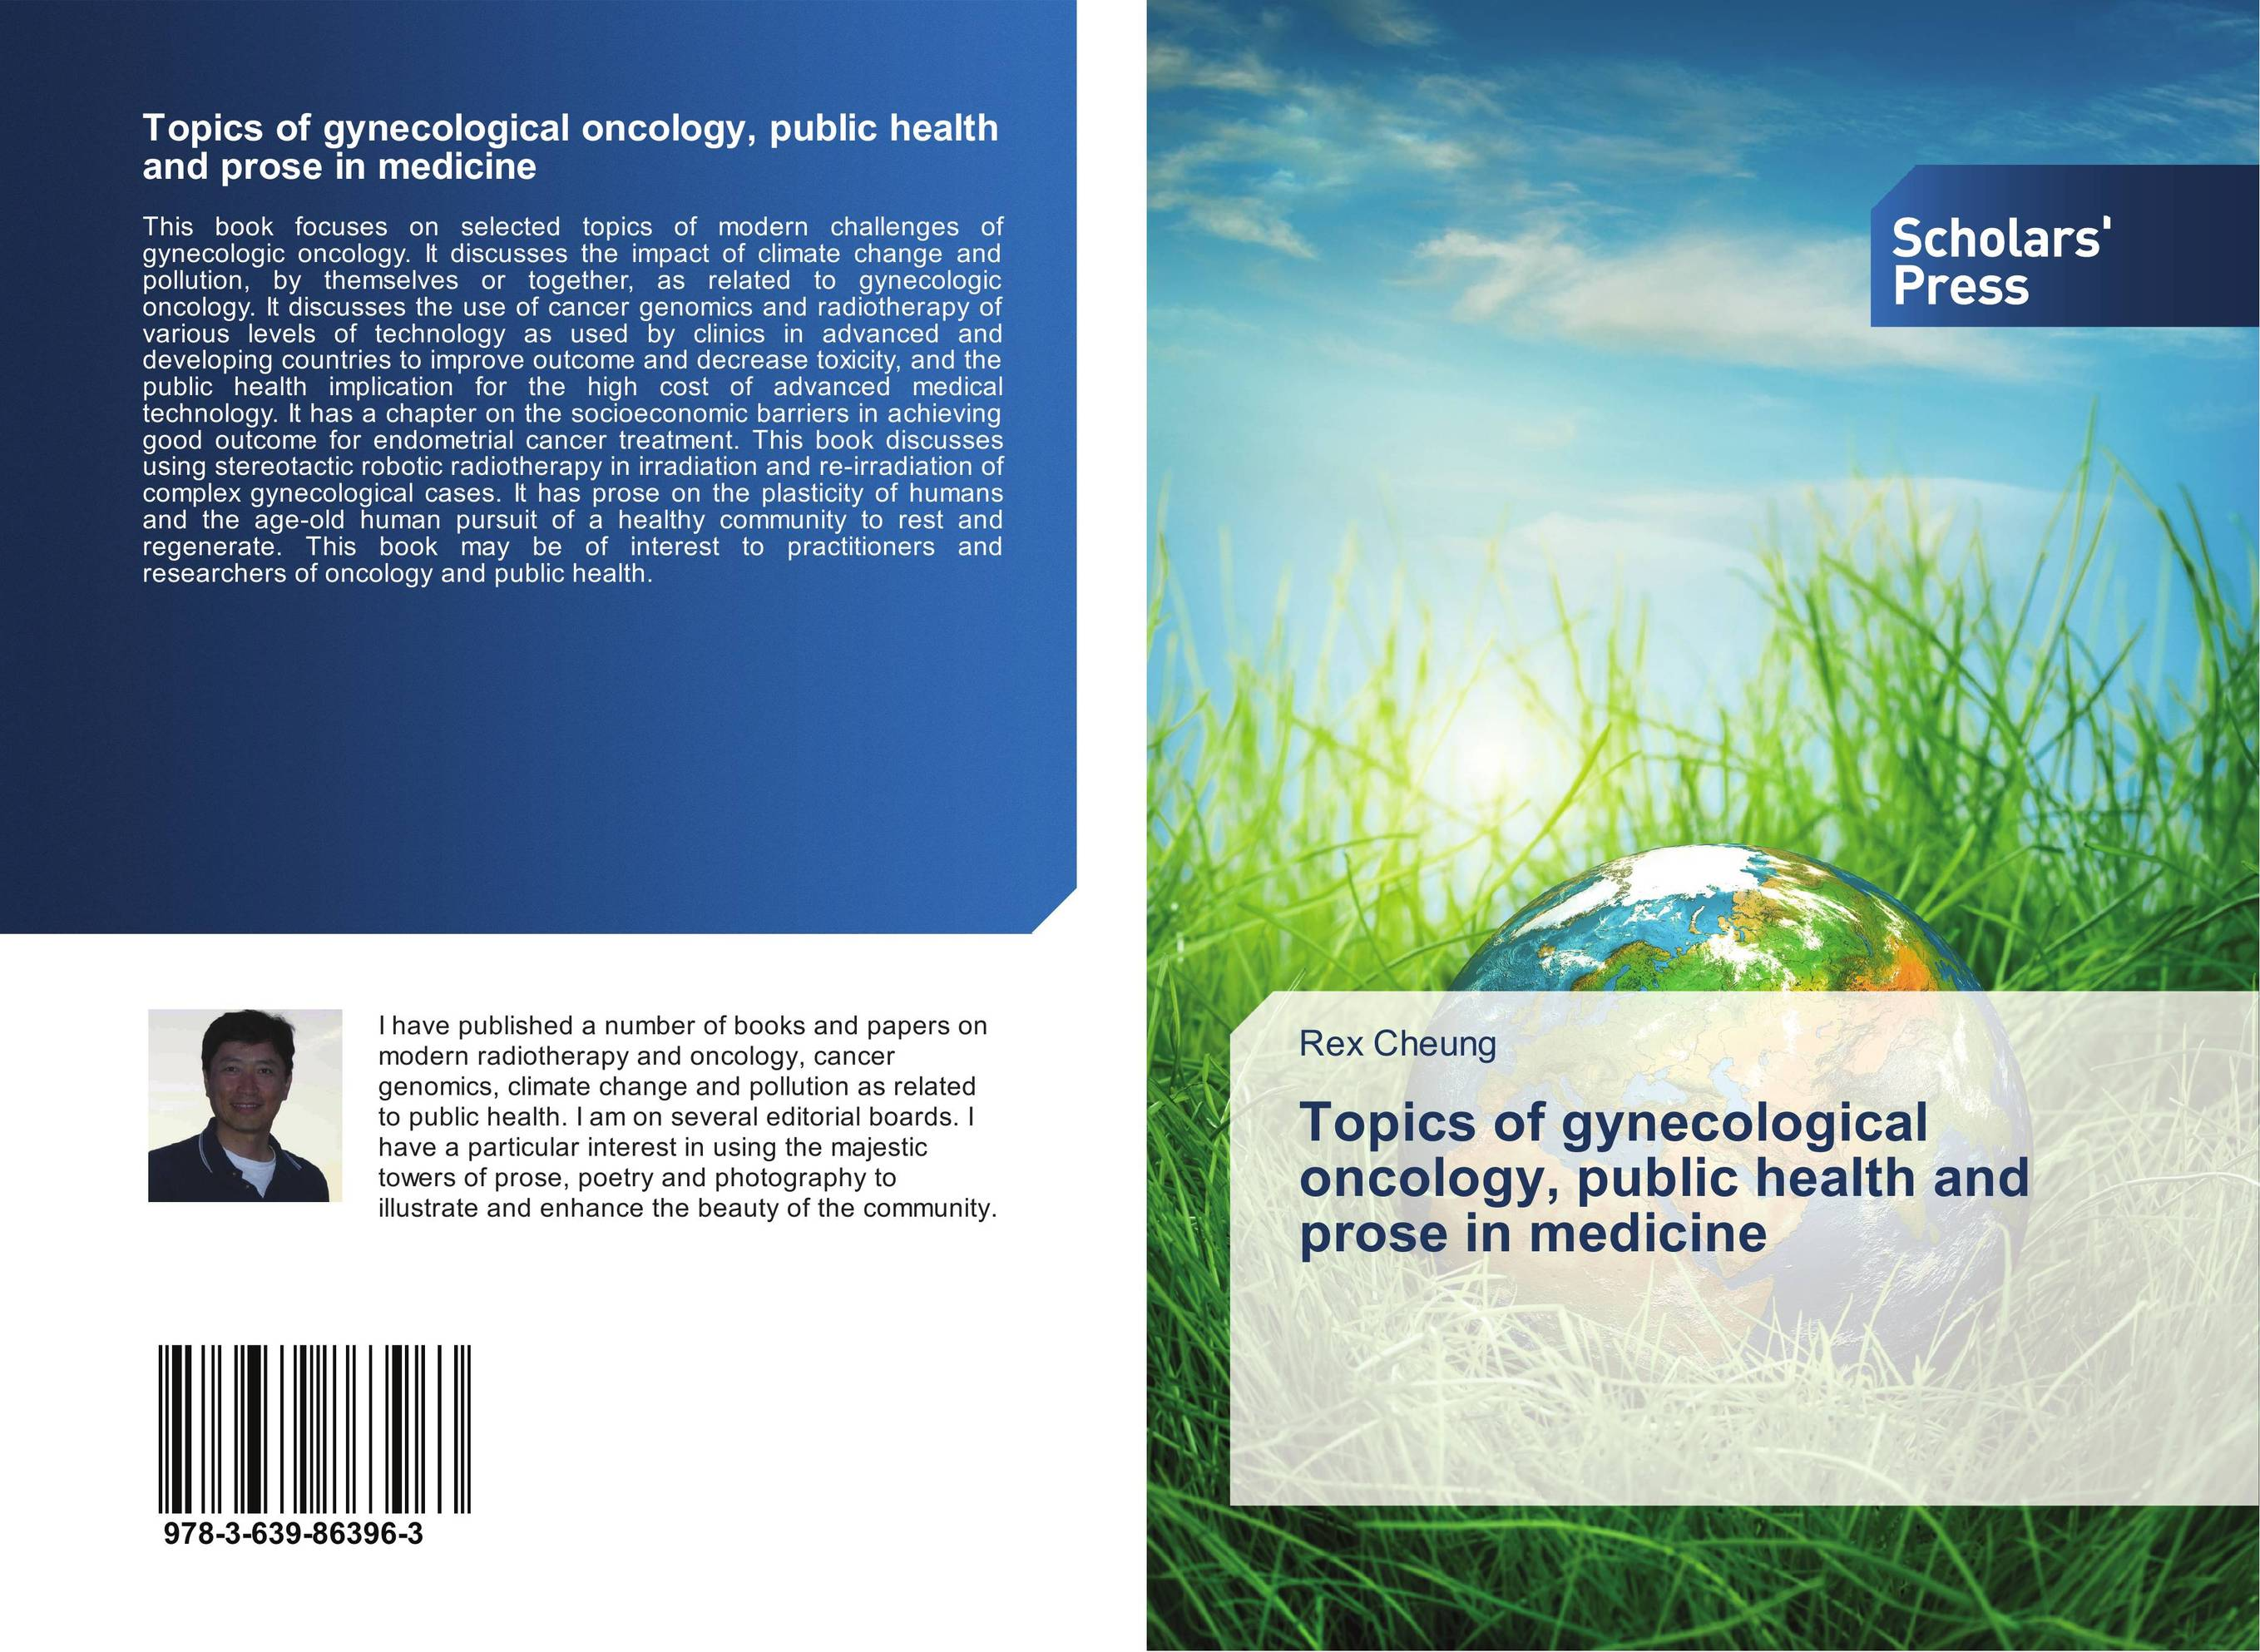 Topics of gynecological oncology, public health and prose in medicine topics of gynecological oncology public health and prose in medicine